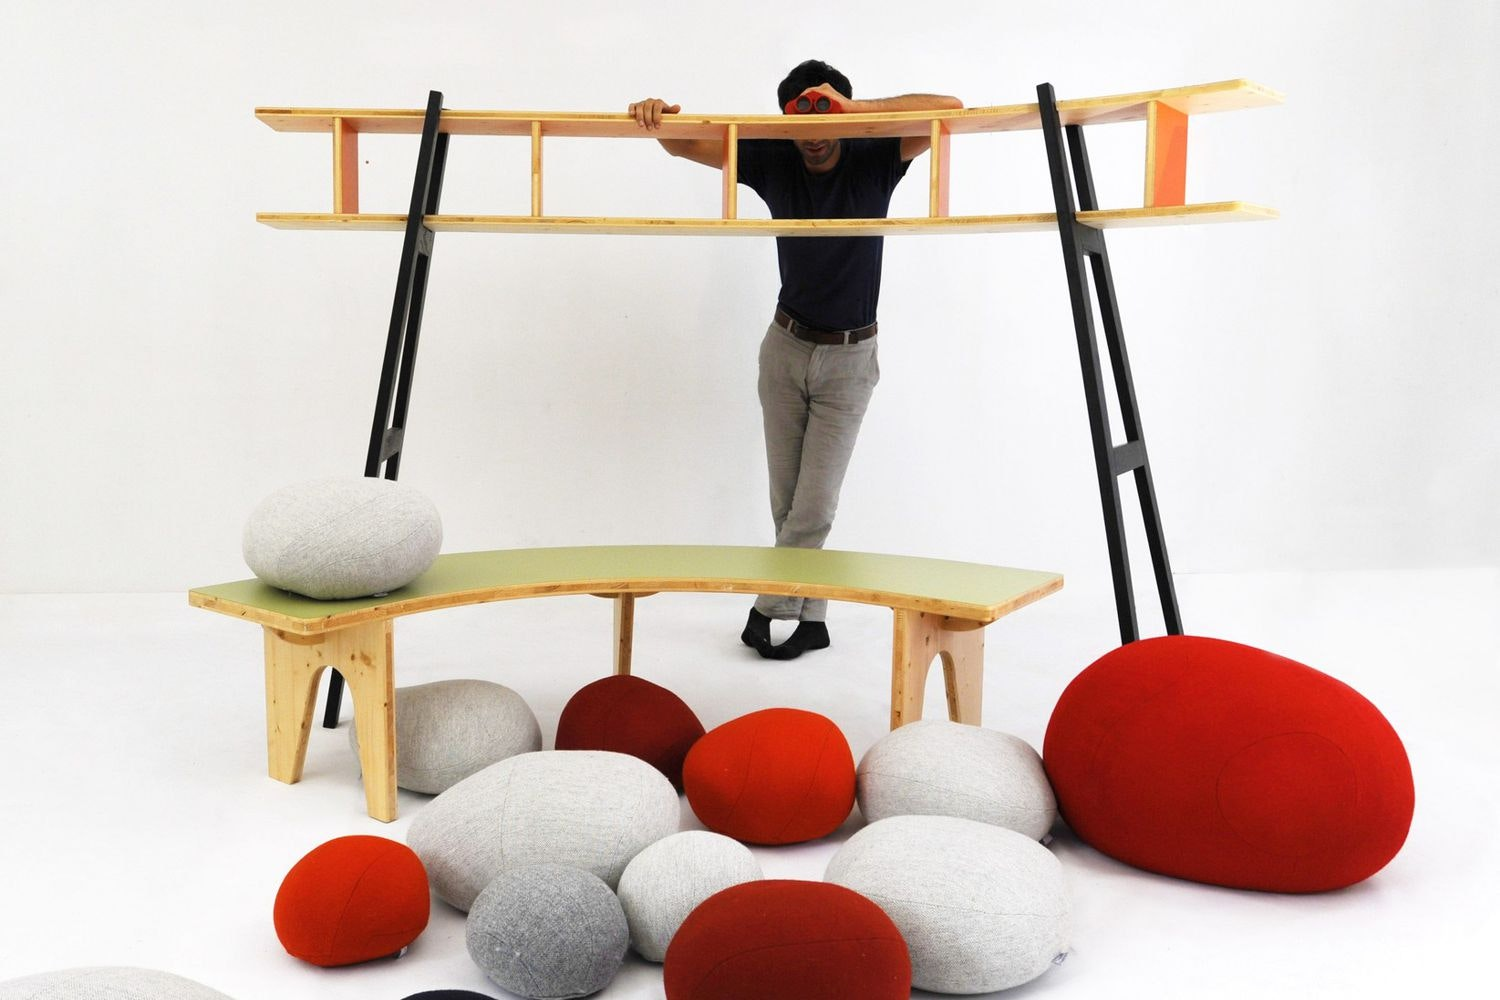 Hasard Bench by Stephanie Marin for Smarin